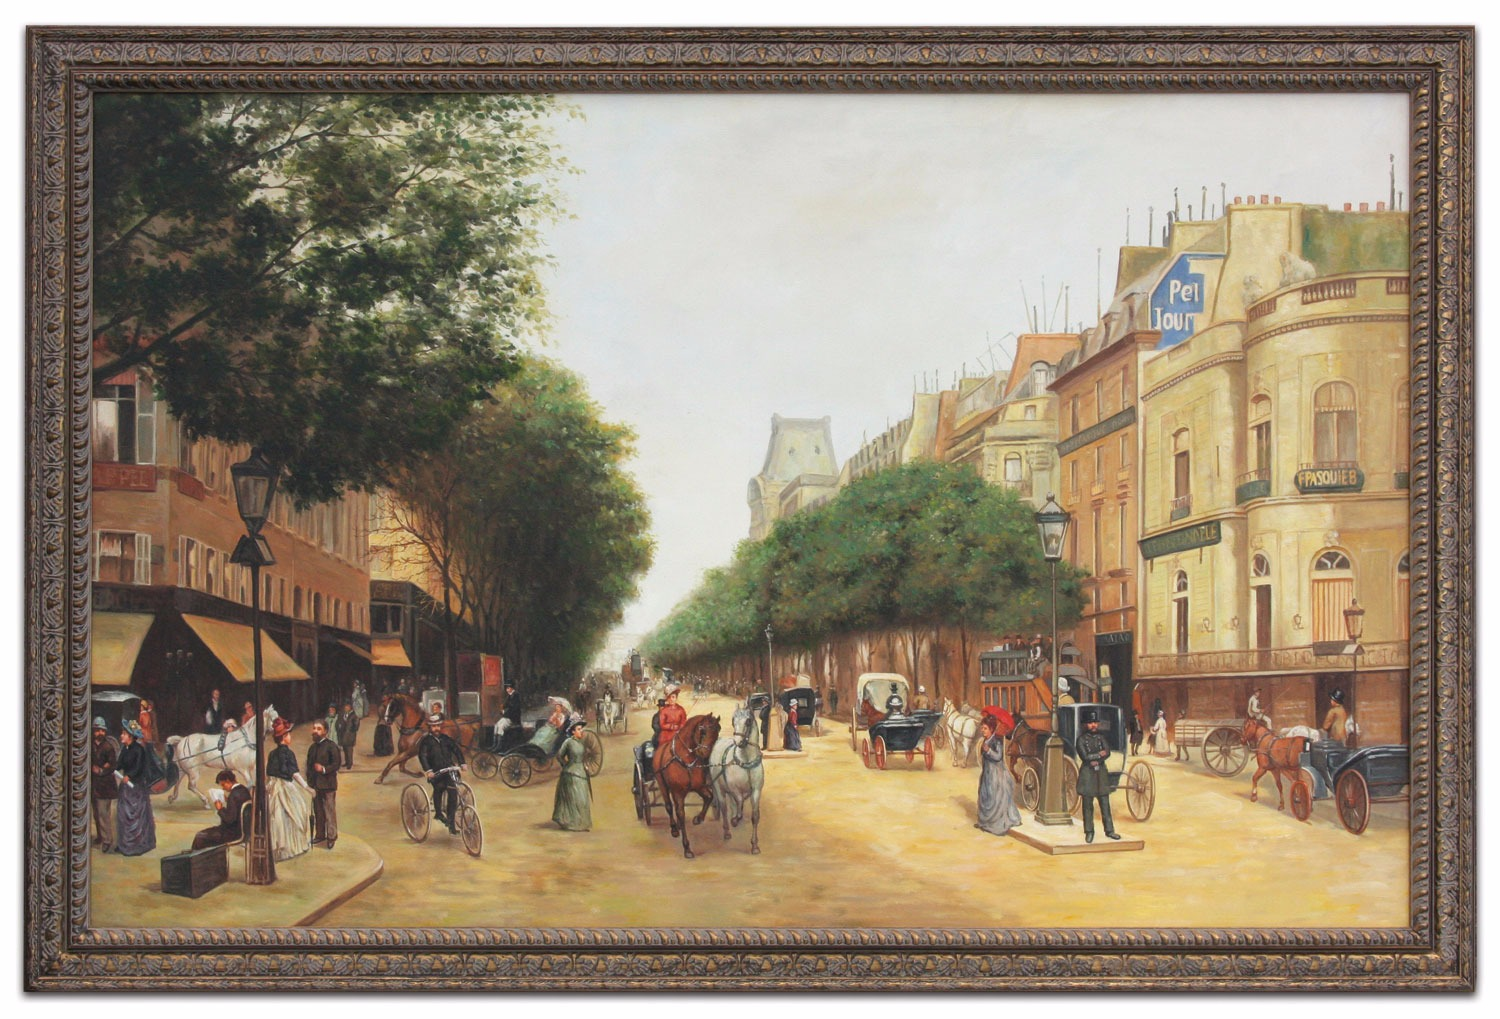 Oil Painting after 'Le boulevard des Italiens, Paris' by Edmond Georges Grandjean